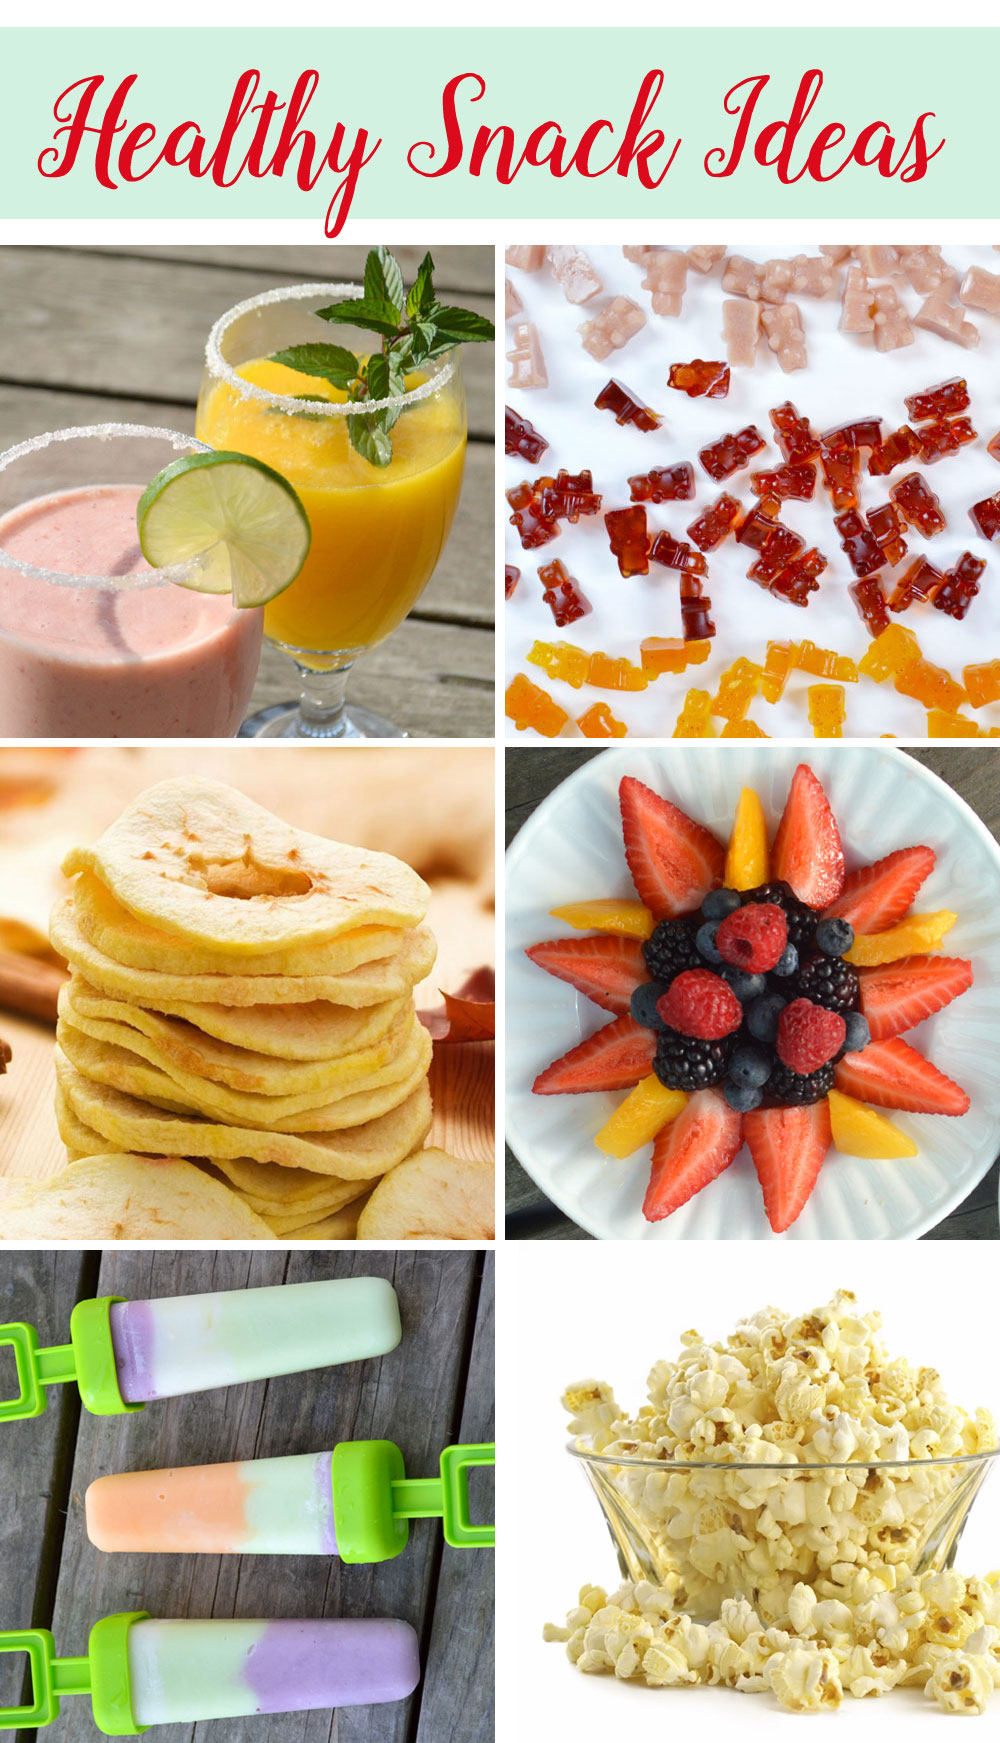 Healthy Snack Ideas for kids - Mommy Scene